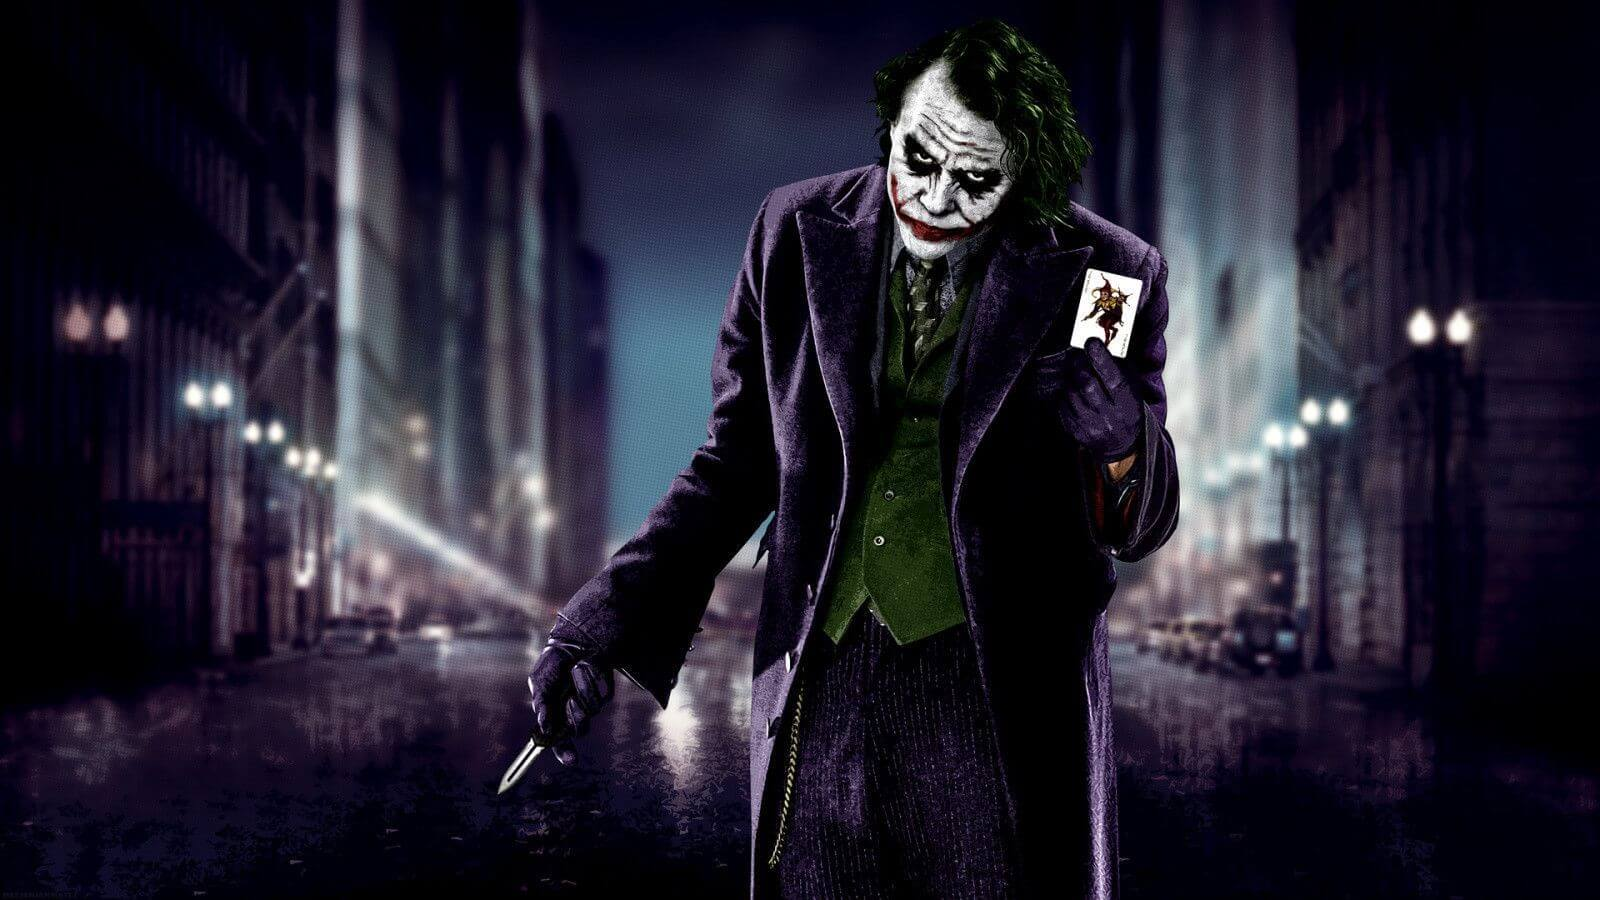 Ultra Hd 1080p Joker Wallpaper Download Free New Wallpapers Hd High Quality Motion